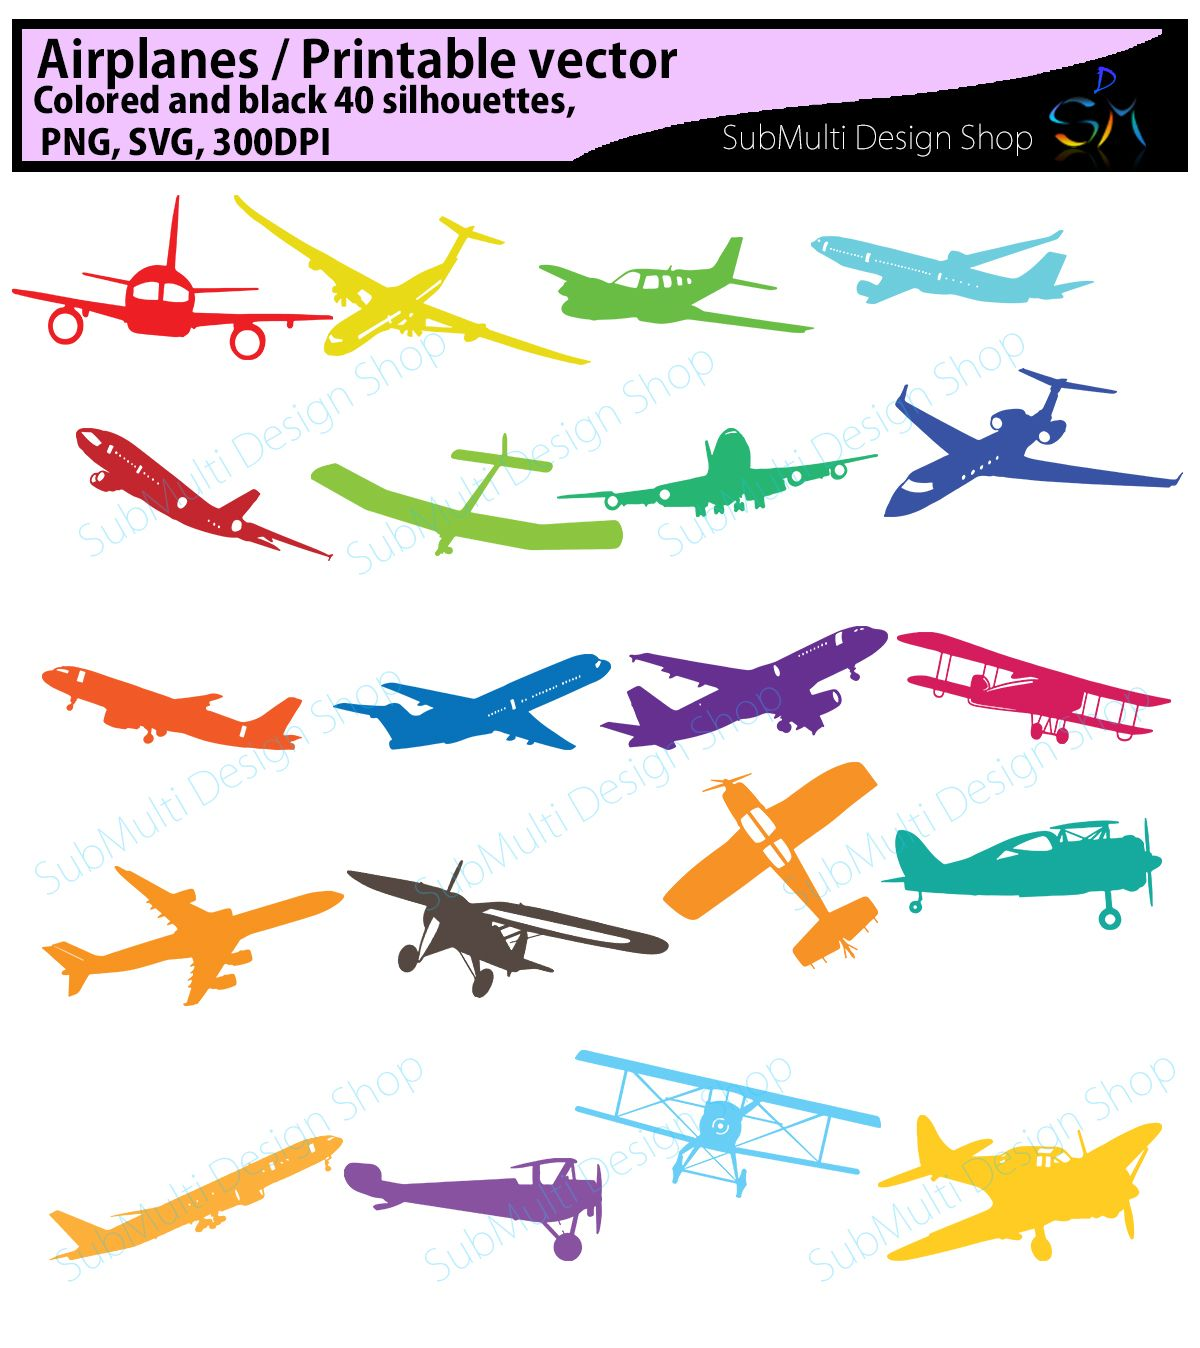 hight resolution of airplane clipart svg airplane airplane clipart airplane craft airplane graphics airplane silhouette cricut cut files design fly logo minimal